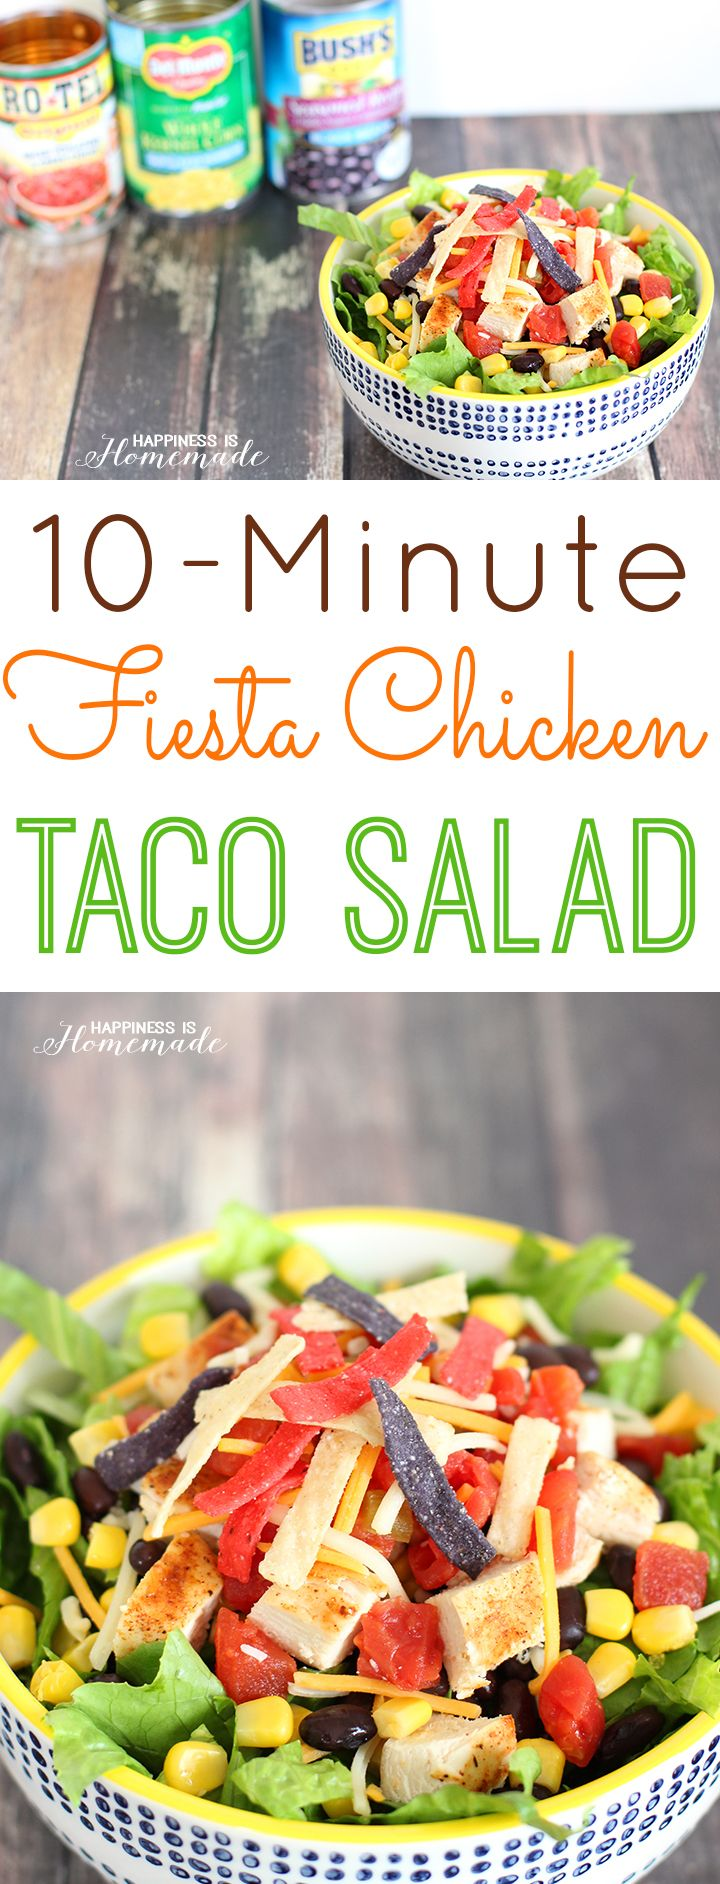 10-Minute Fiesta Chicken Taco Salad - this is my favorite lunch of all time! So easy, and packed full of flavor!